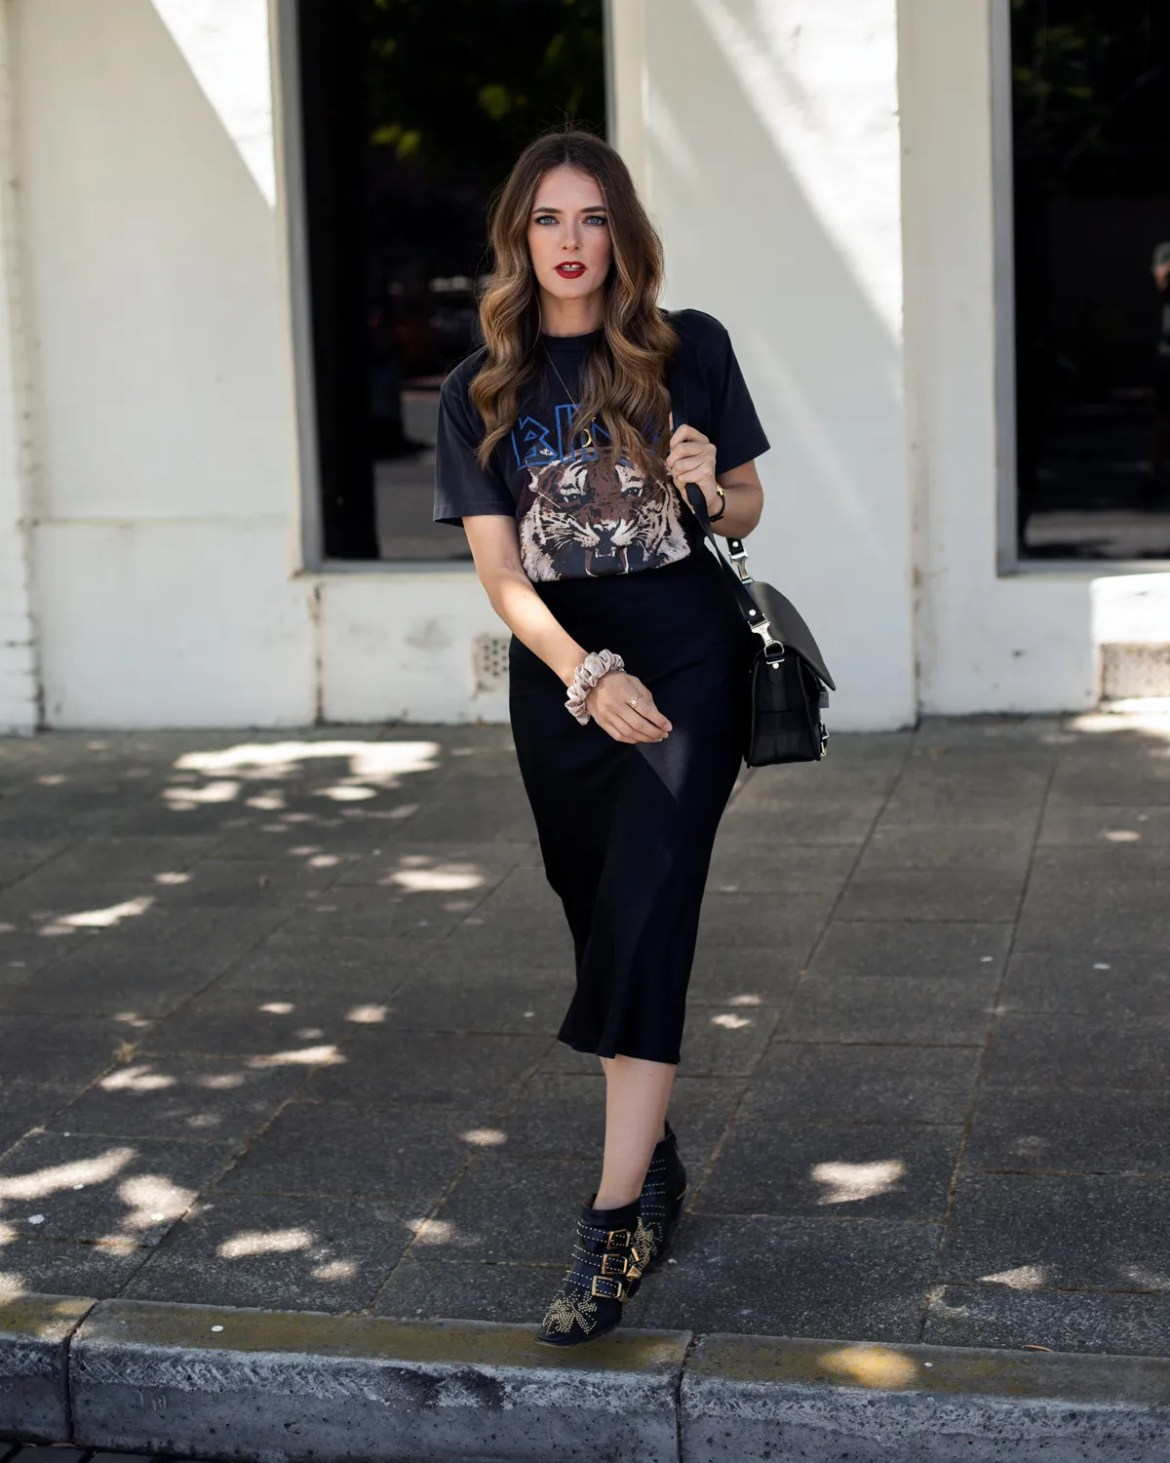 Anine Bing vintage tee with lion print and silk slip skirt worn with Chloe studded boots and Proenza Schouler PS11 bag